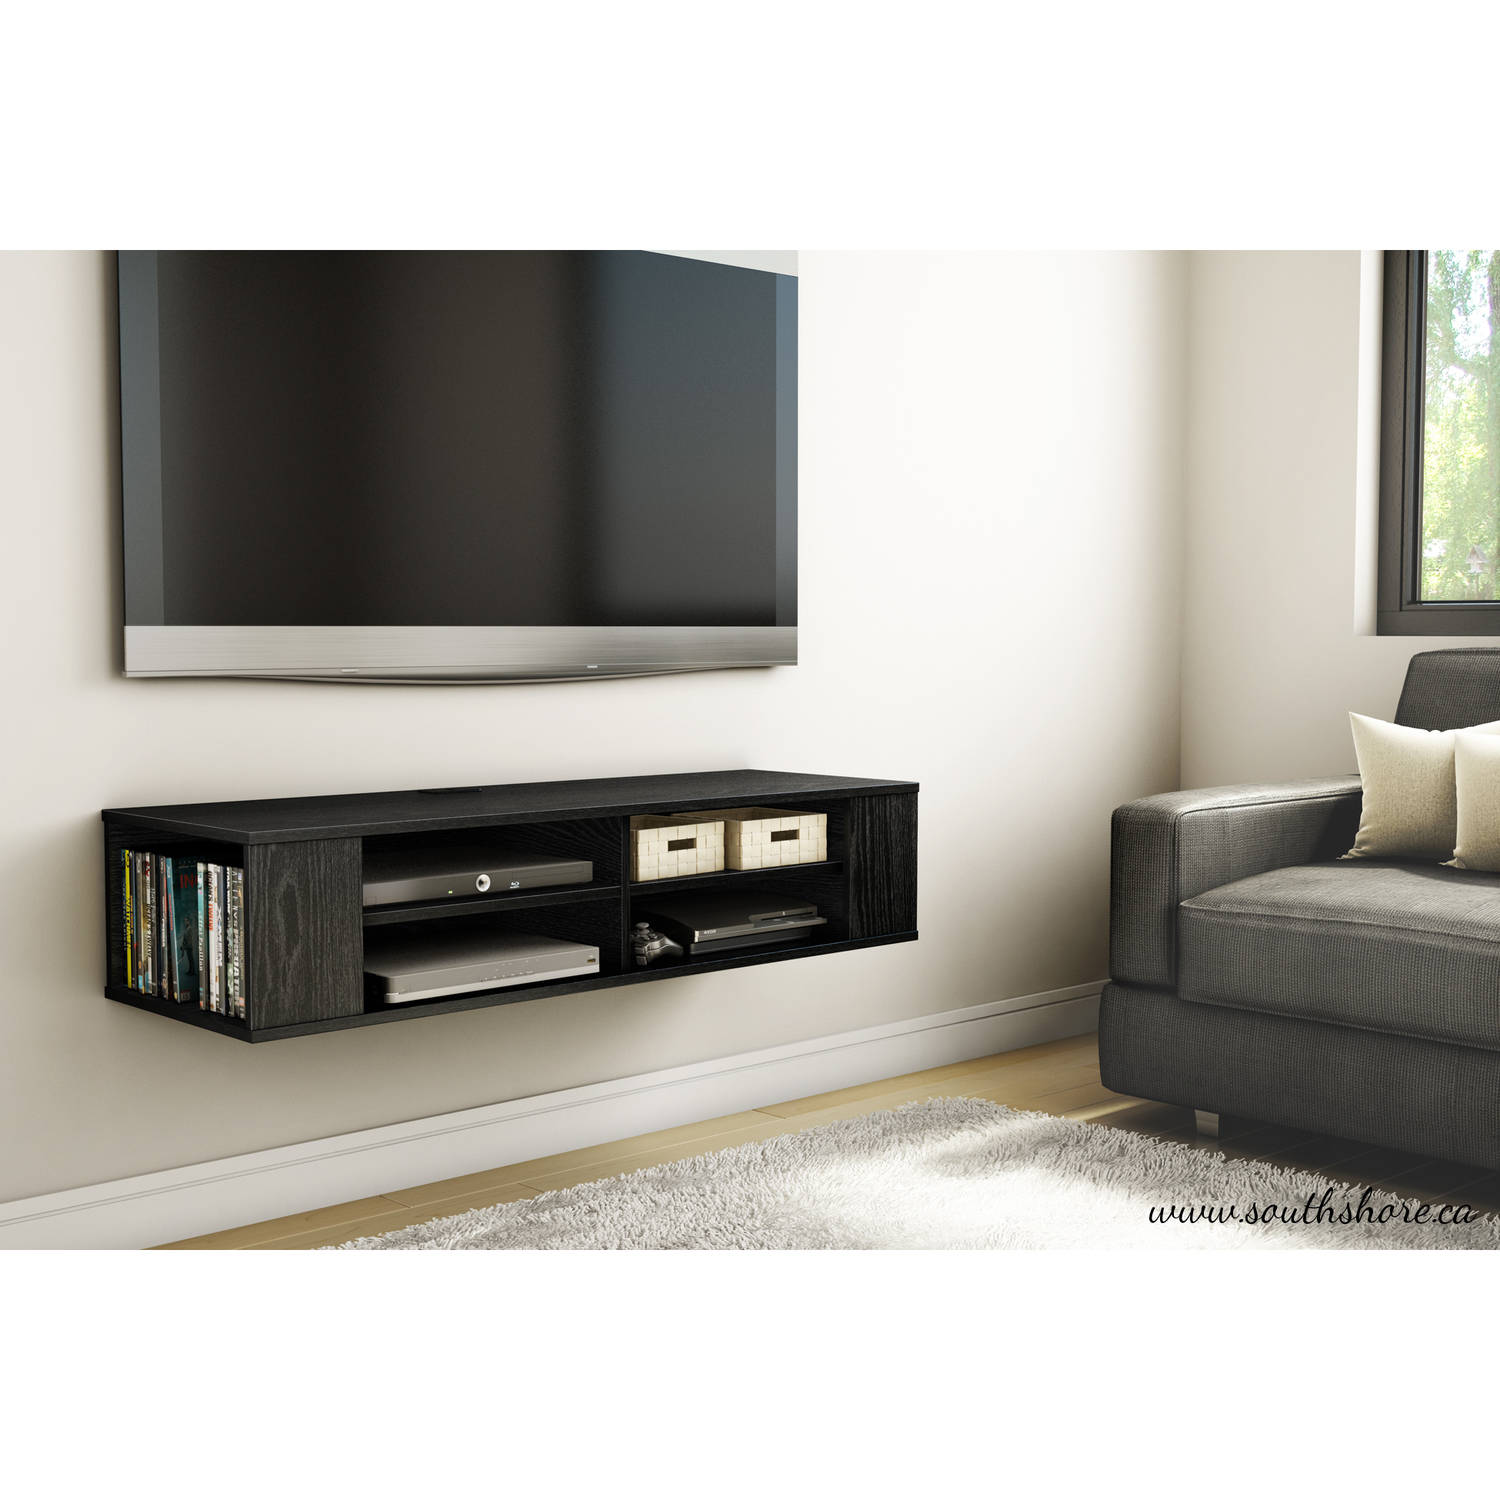 """South Shore City Life 48"""" Wall Mounted Media Console, Multiple Colors"""